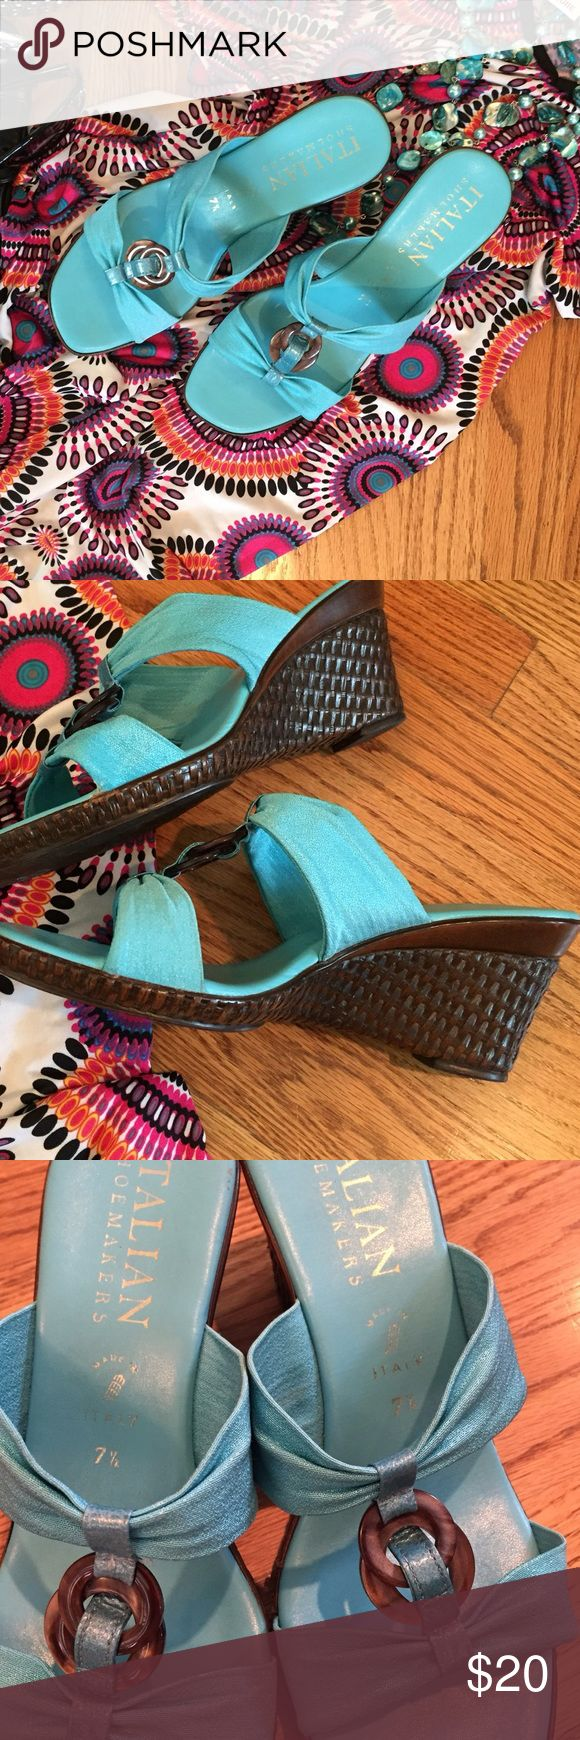 Italian Turquoise Wedge Sandals Gorgeous Italian Wedge Sandals in amazing condition, turquoise footbed with dark brown basket woven pattern heels. Italian Shoe Makers Shoes Wedges